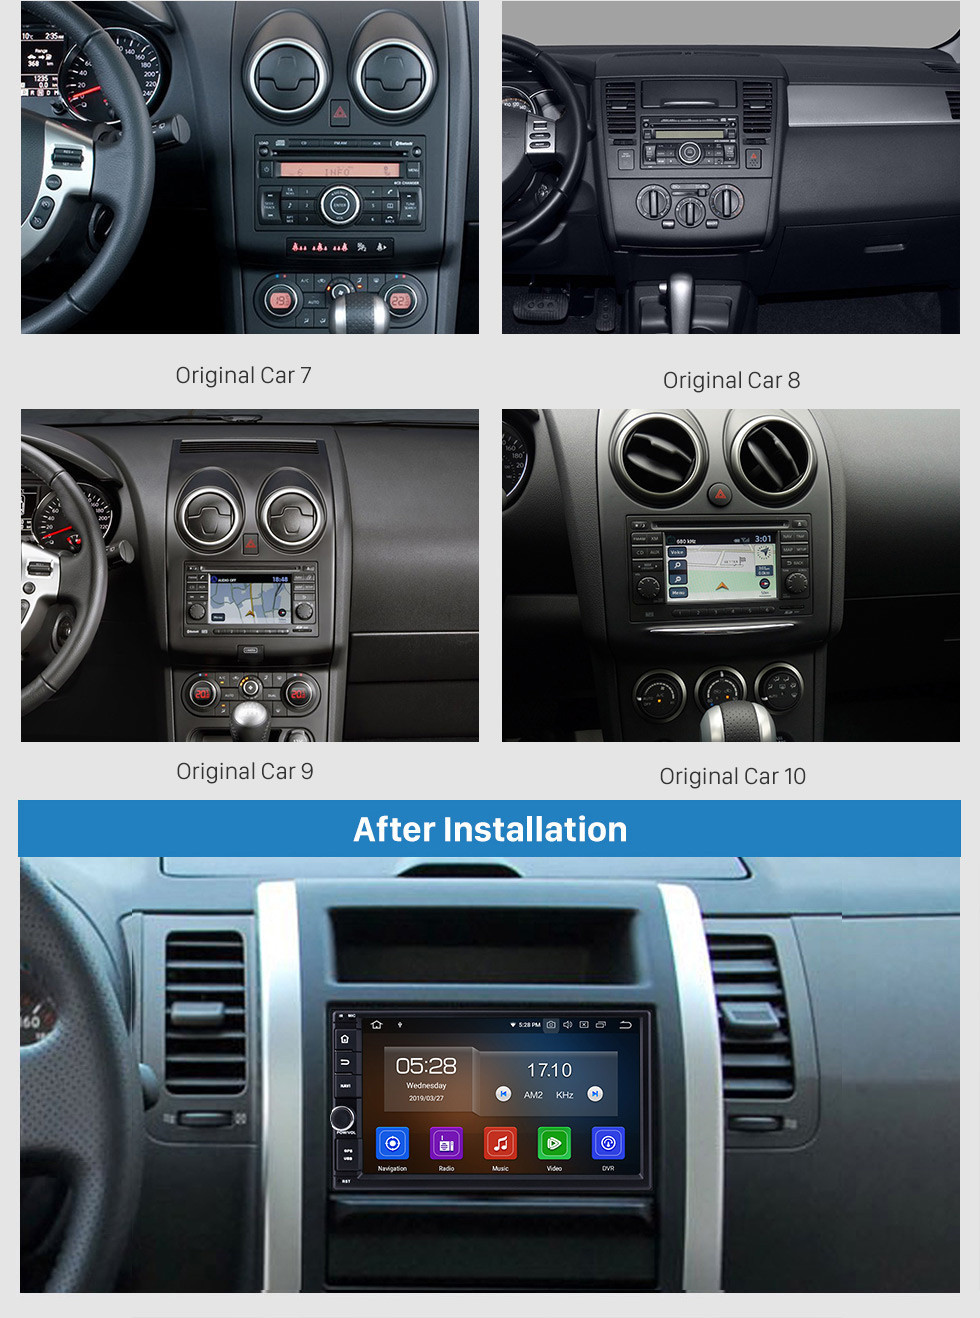 Seicane Aftermarket Android 10.0 GPS Navigation System for 2004-2009 Kia sportage Radio Upgrade with Bluetooth Music DVD Player Car Stereo Touch Screen WiFi Mirror Link OBD2 Steering Wheel Control